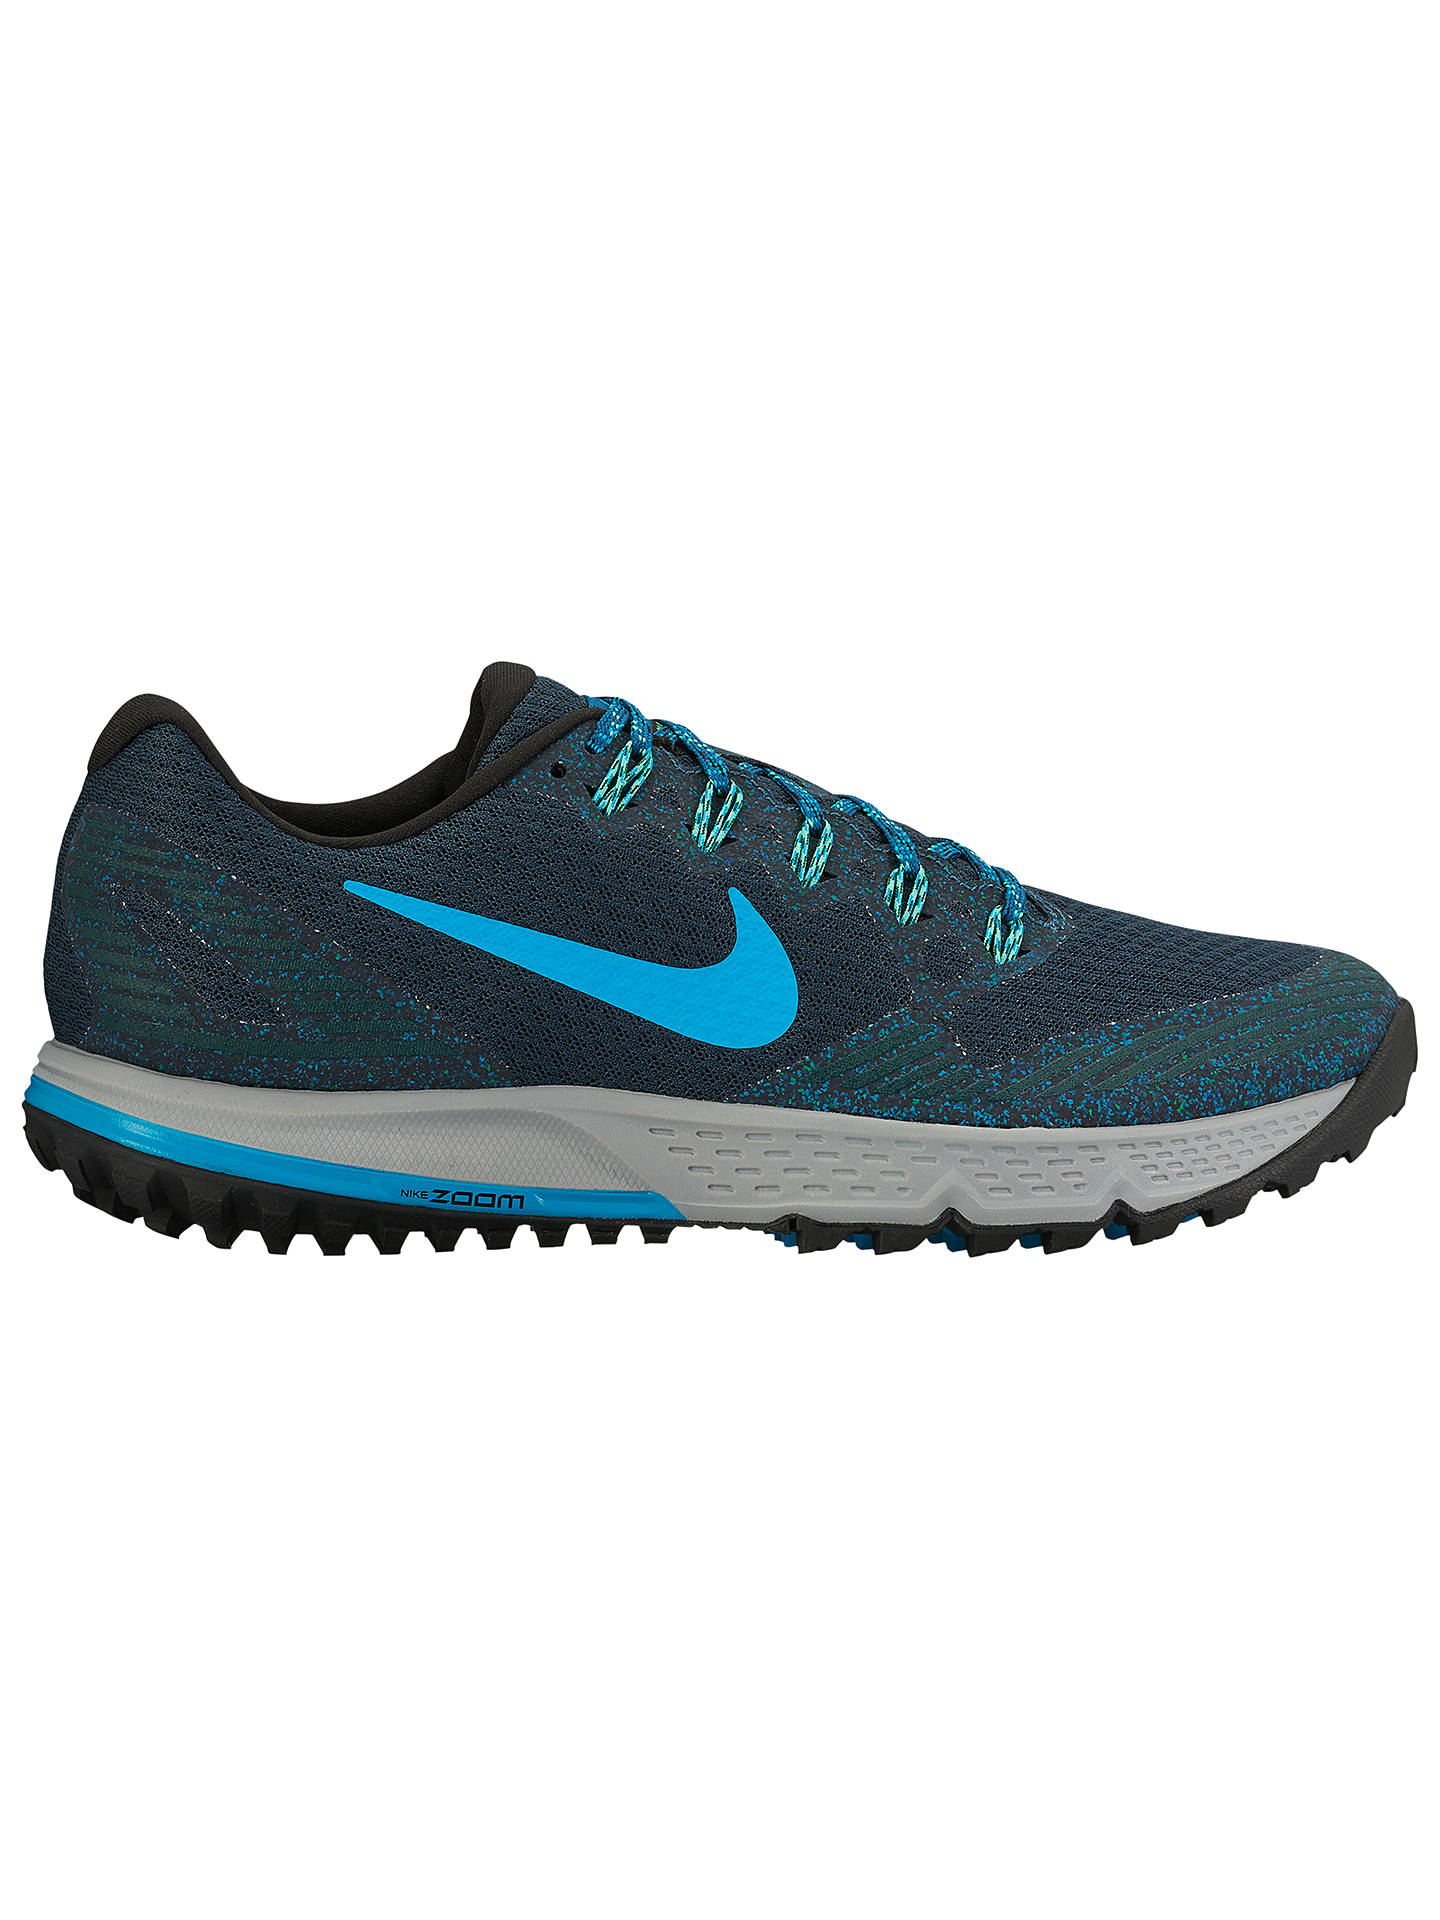 1875453dd692e Buy Nike Air Zoom Wildhorse 3 Men s Running Shoes